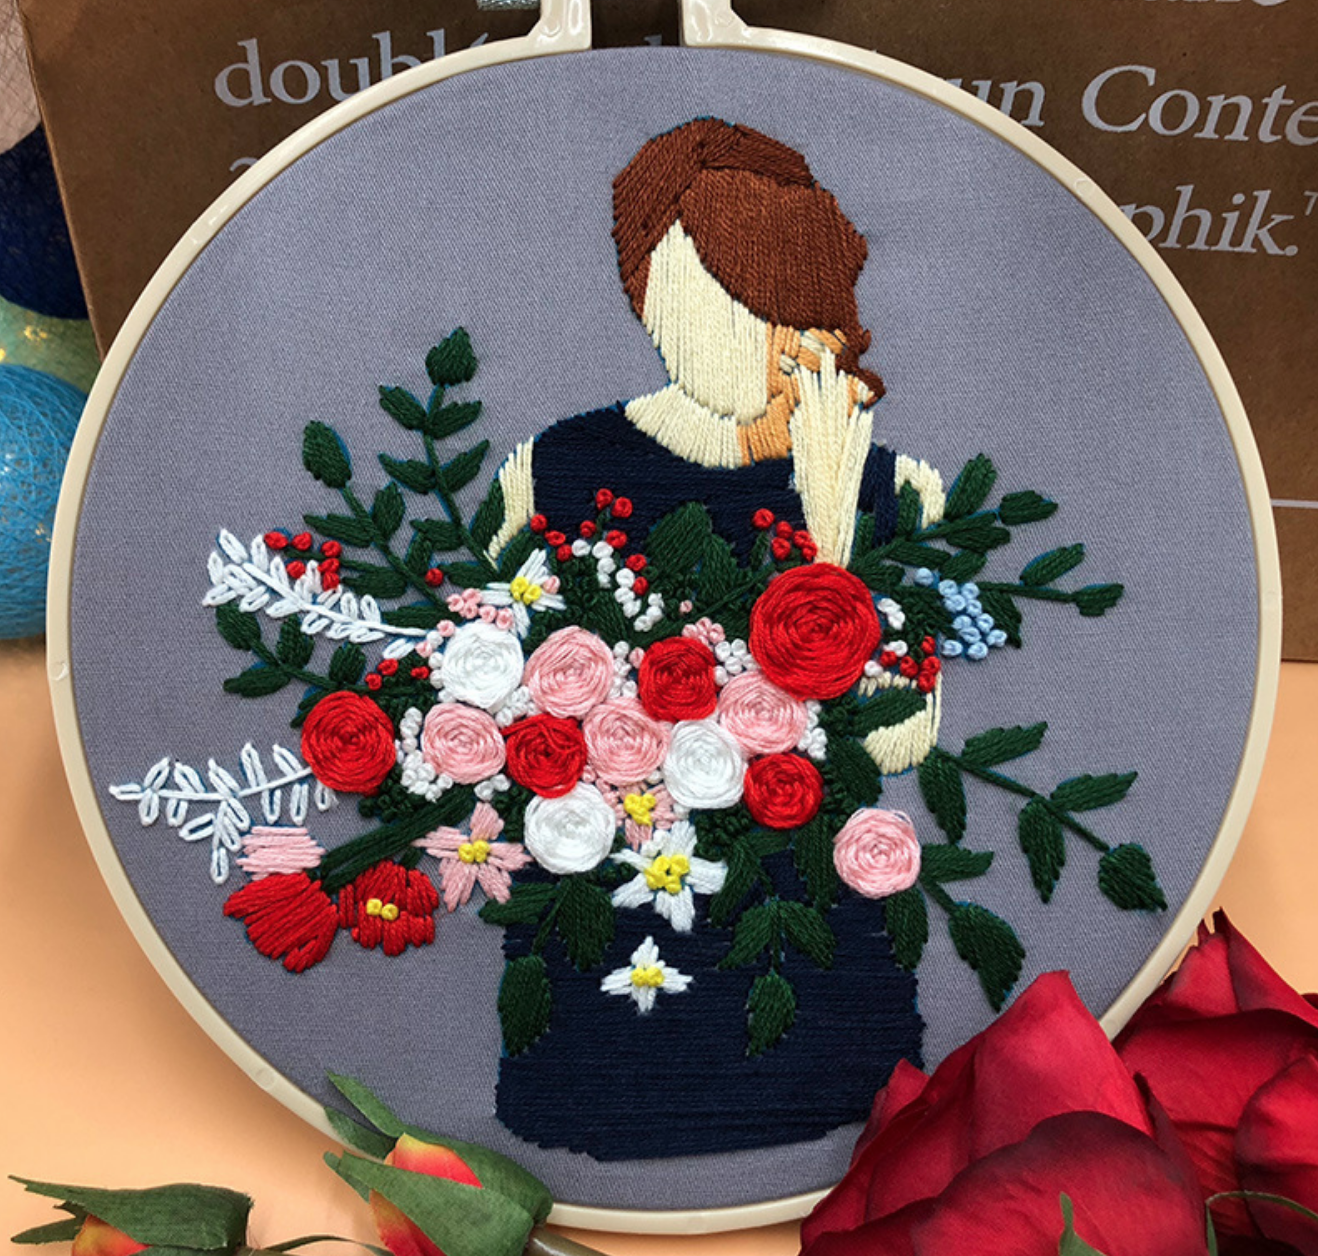 Pink/Red/White Bouquet held by Brunette Woman on Grey Embroidery